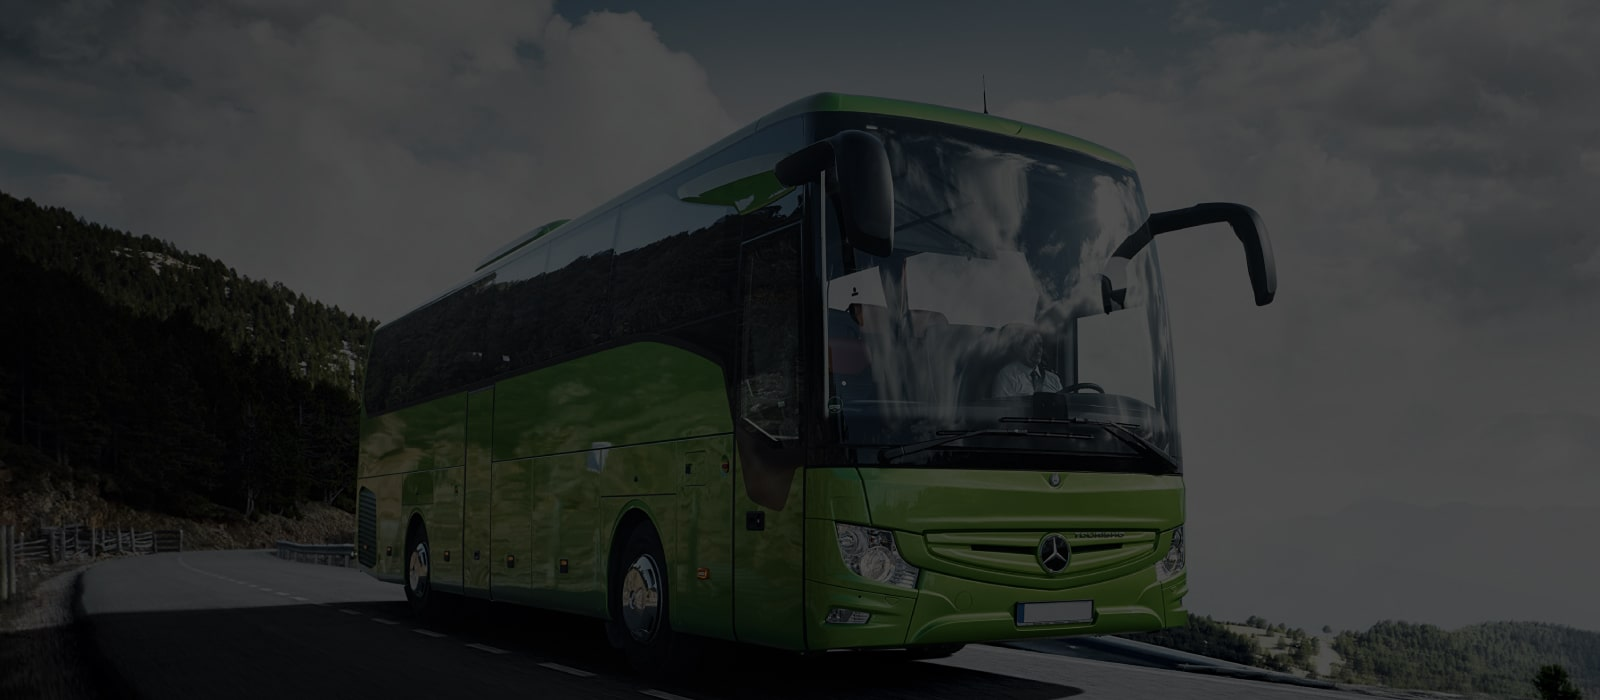 Cheap Coach Hire UK